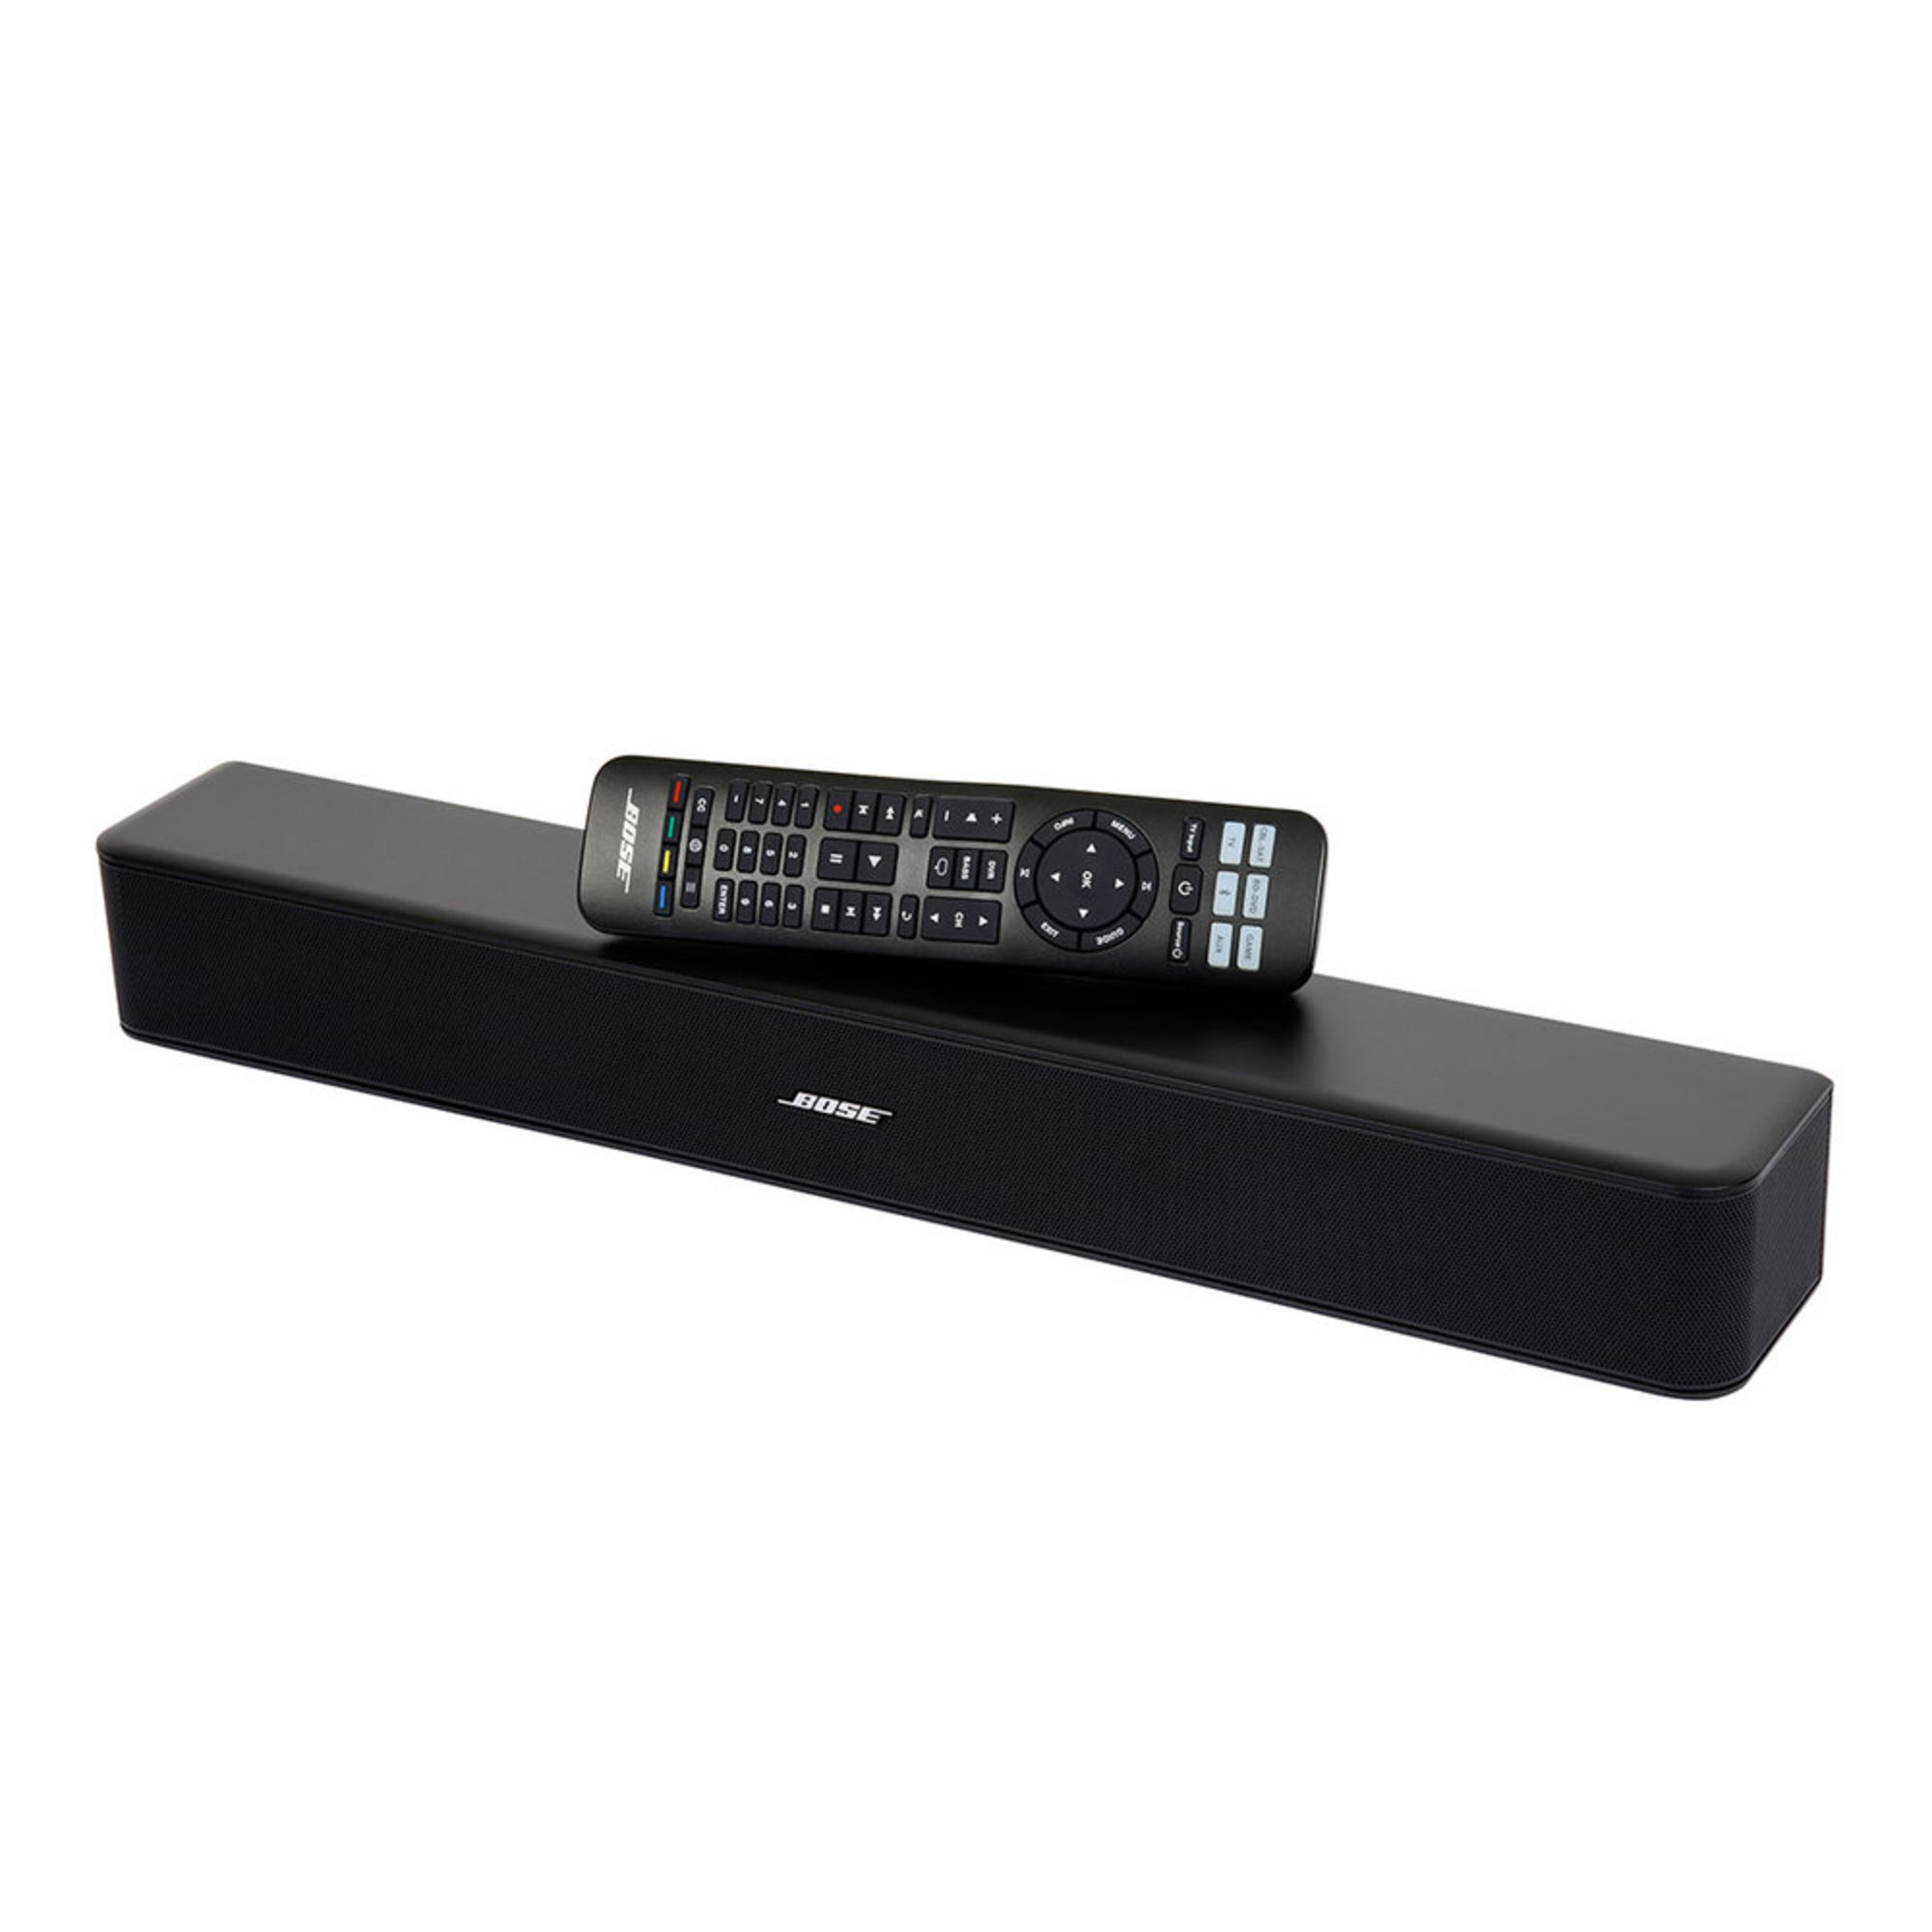 Bose Sound System >> Bose Solo 5 Tv Sound System Home Audio Electronics Shop Your